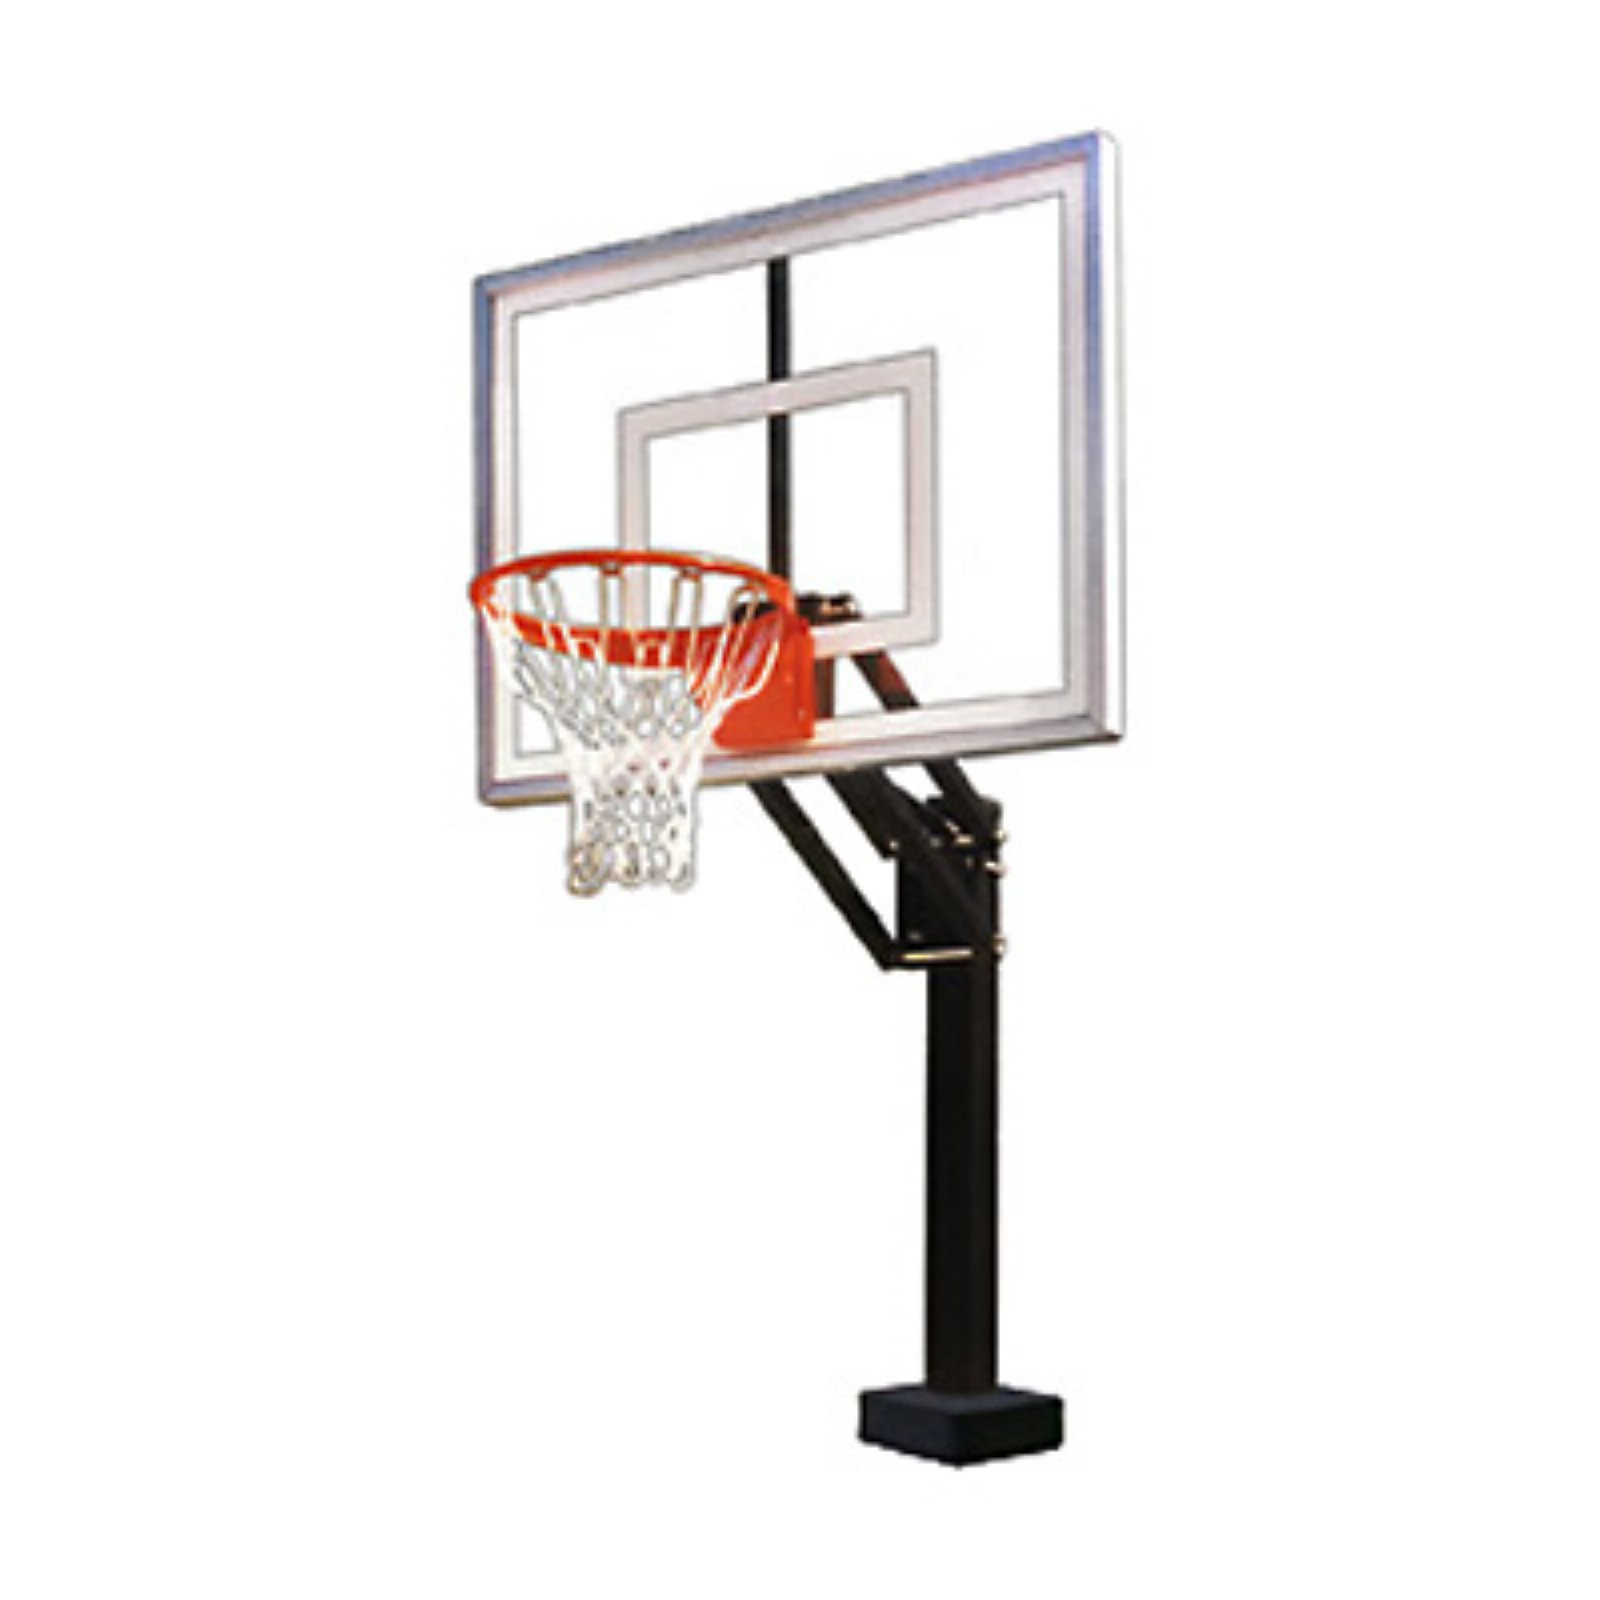 First Team HydroChamp Adjustable Poolside Basketball System by First Team Sports Inc